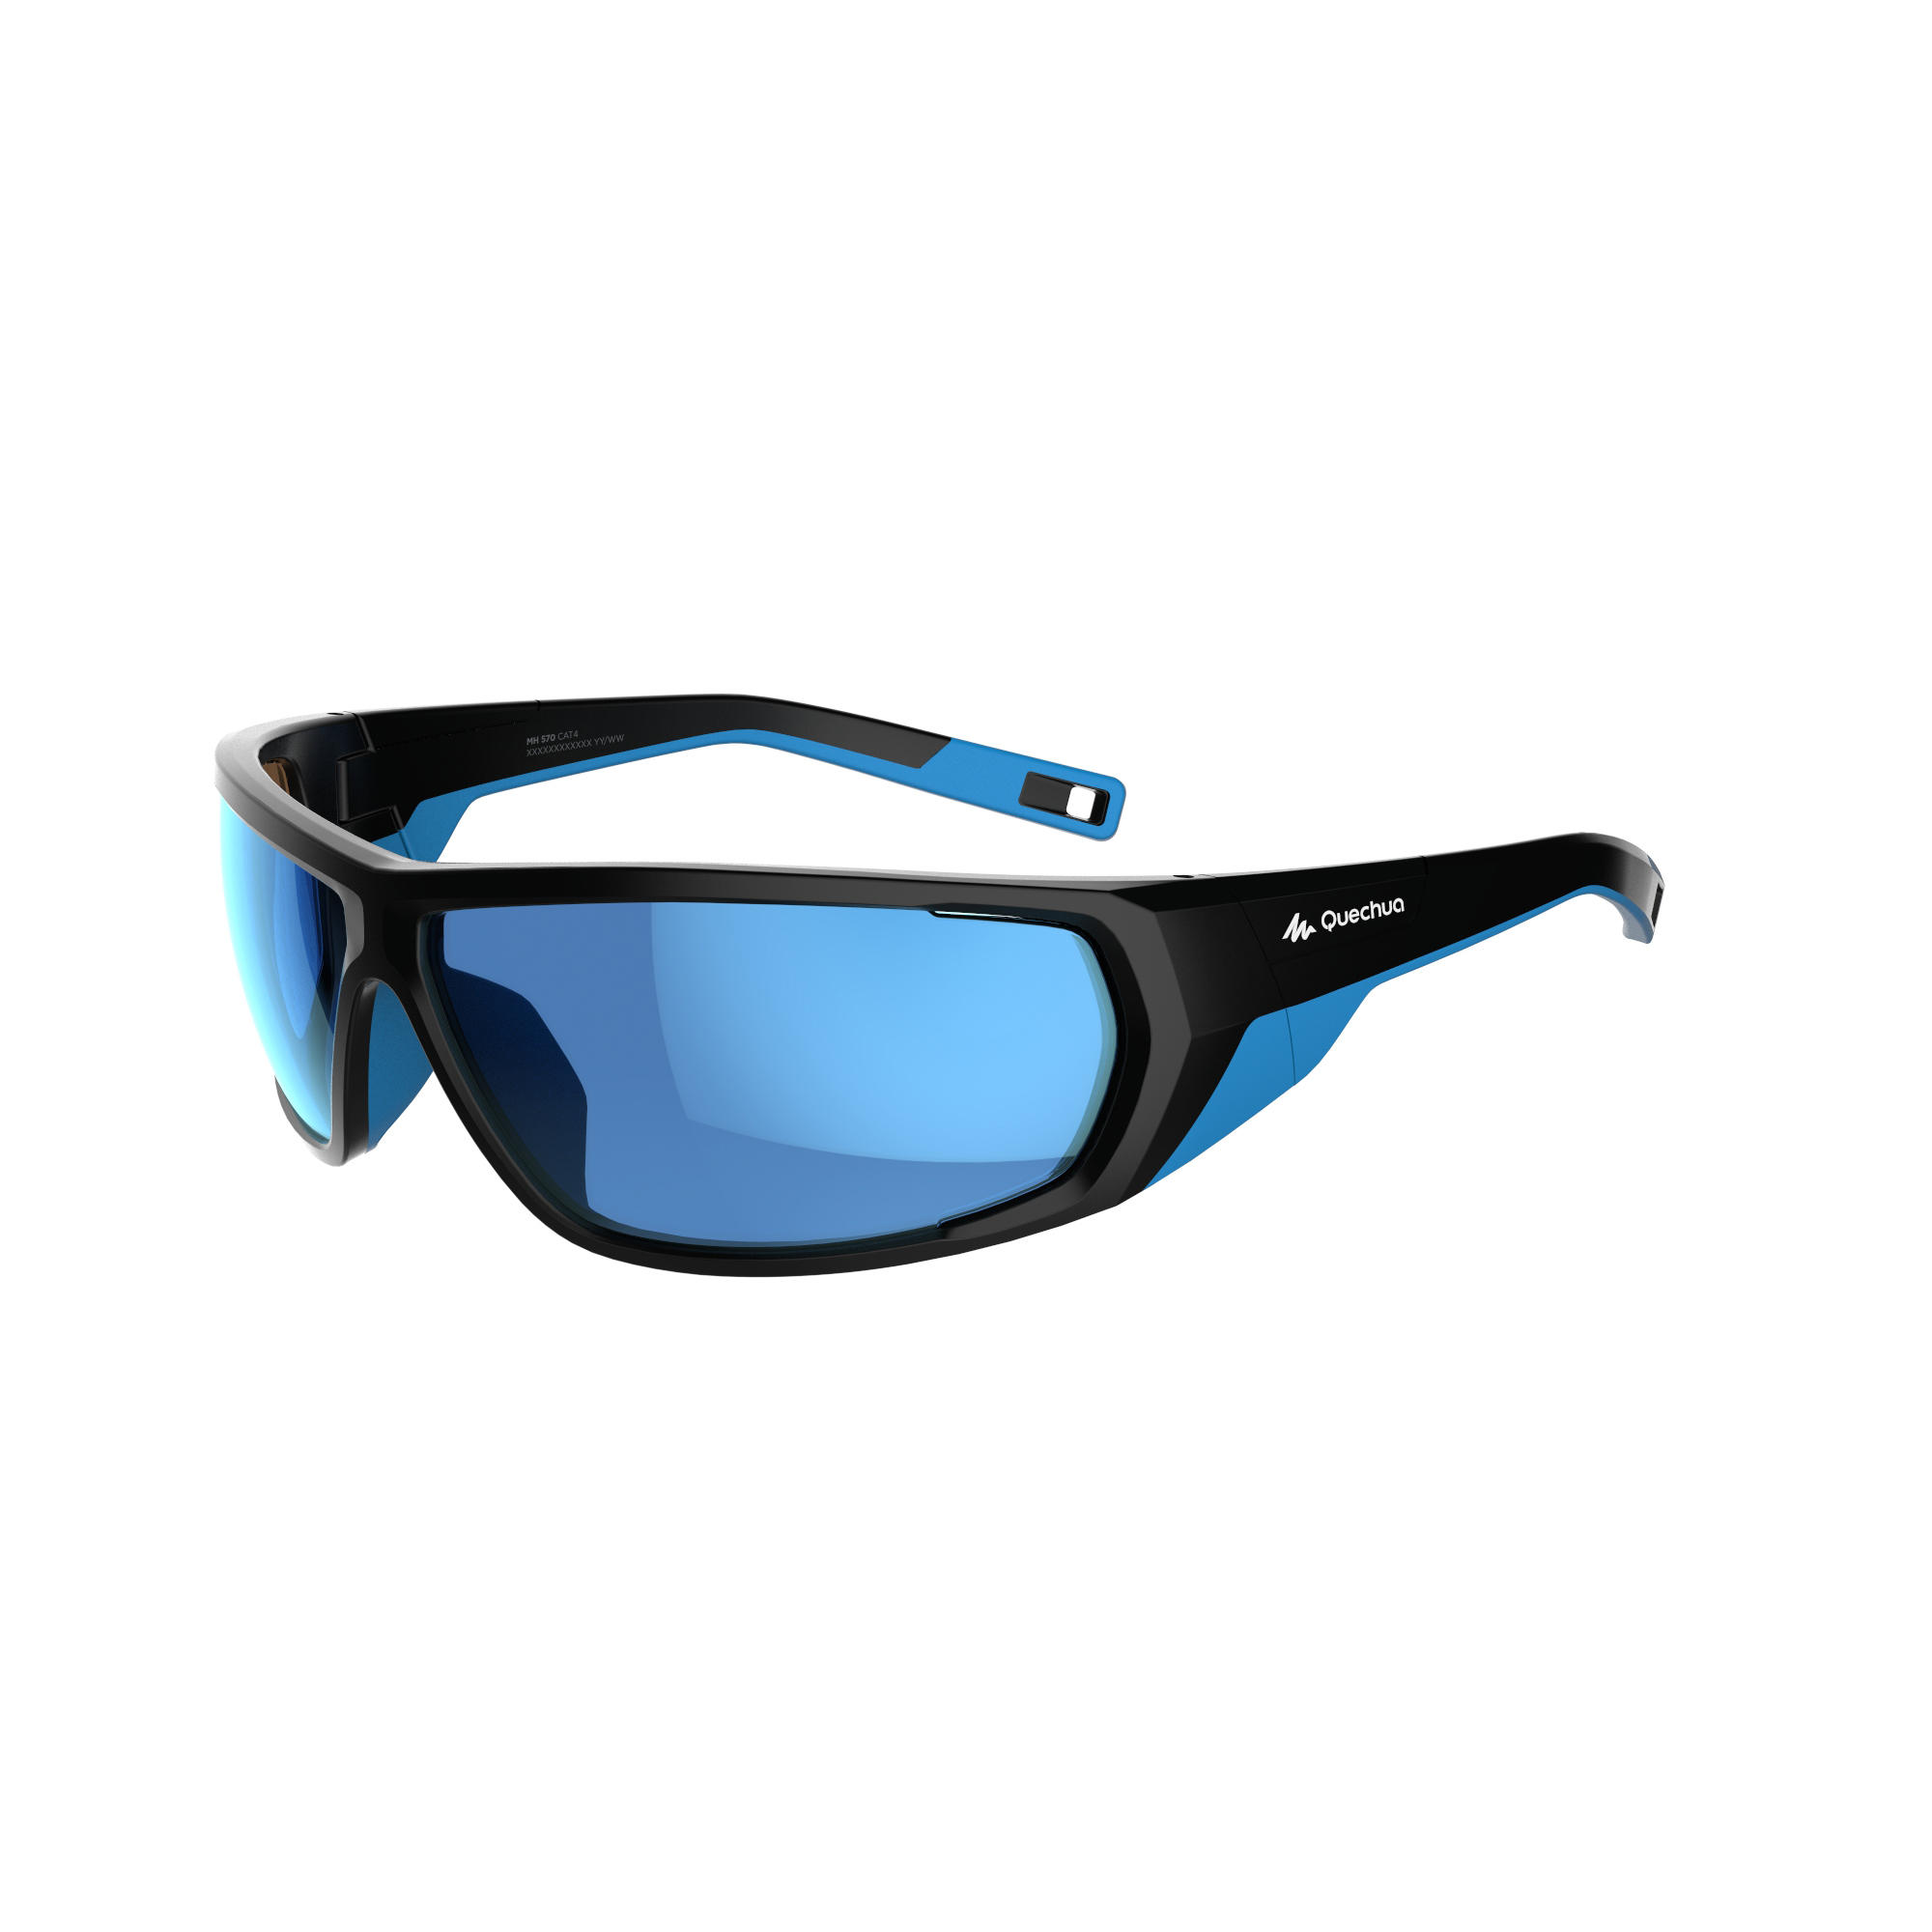 IWATE adult mountain & ski sunglasses – black & blue category 4